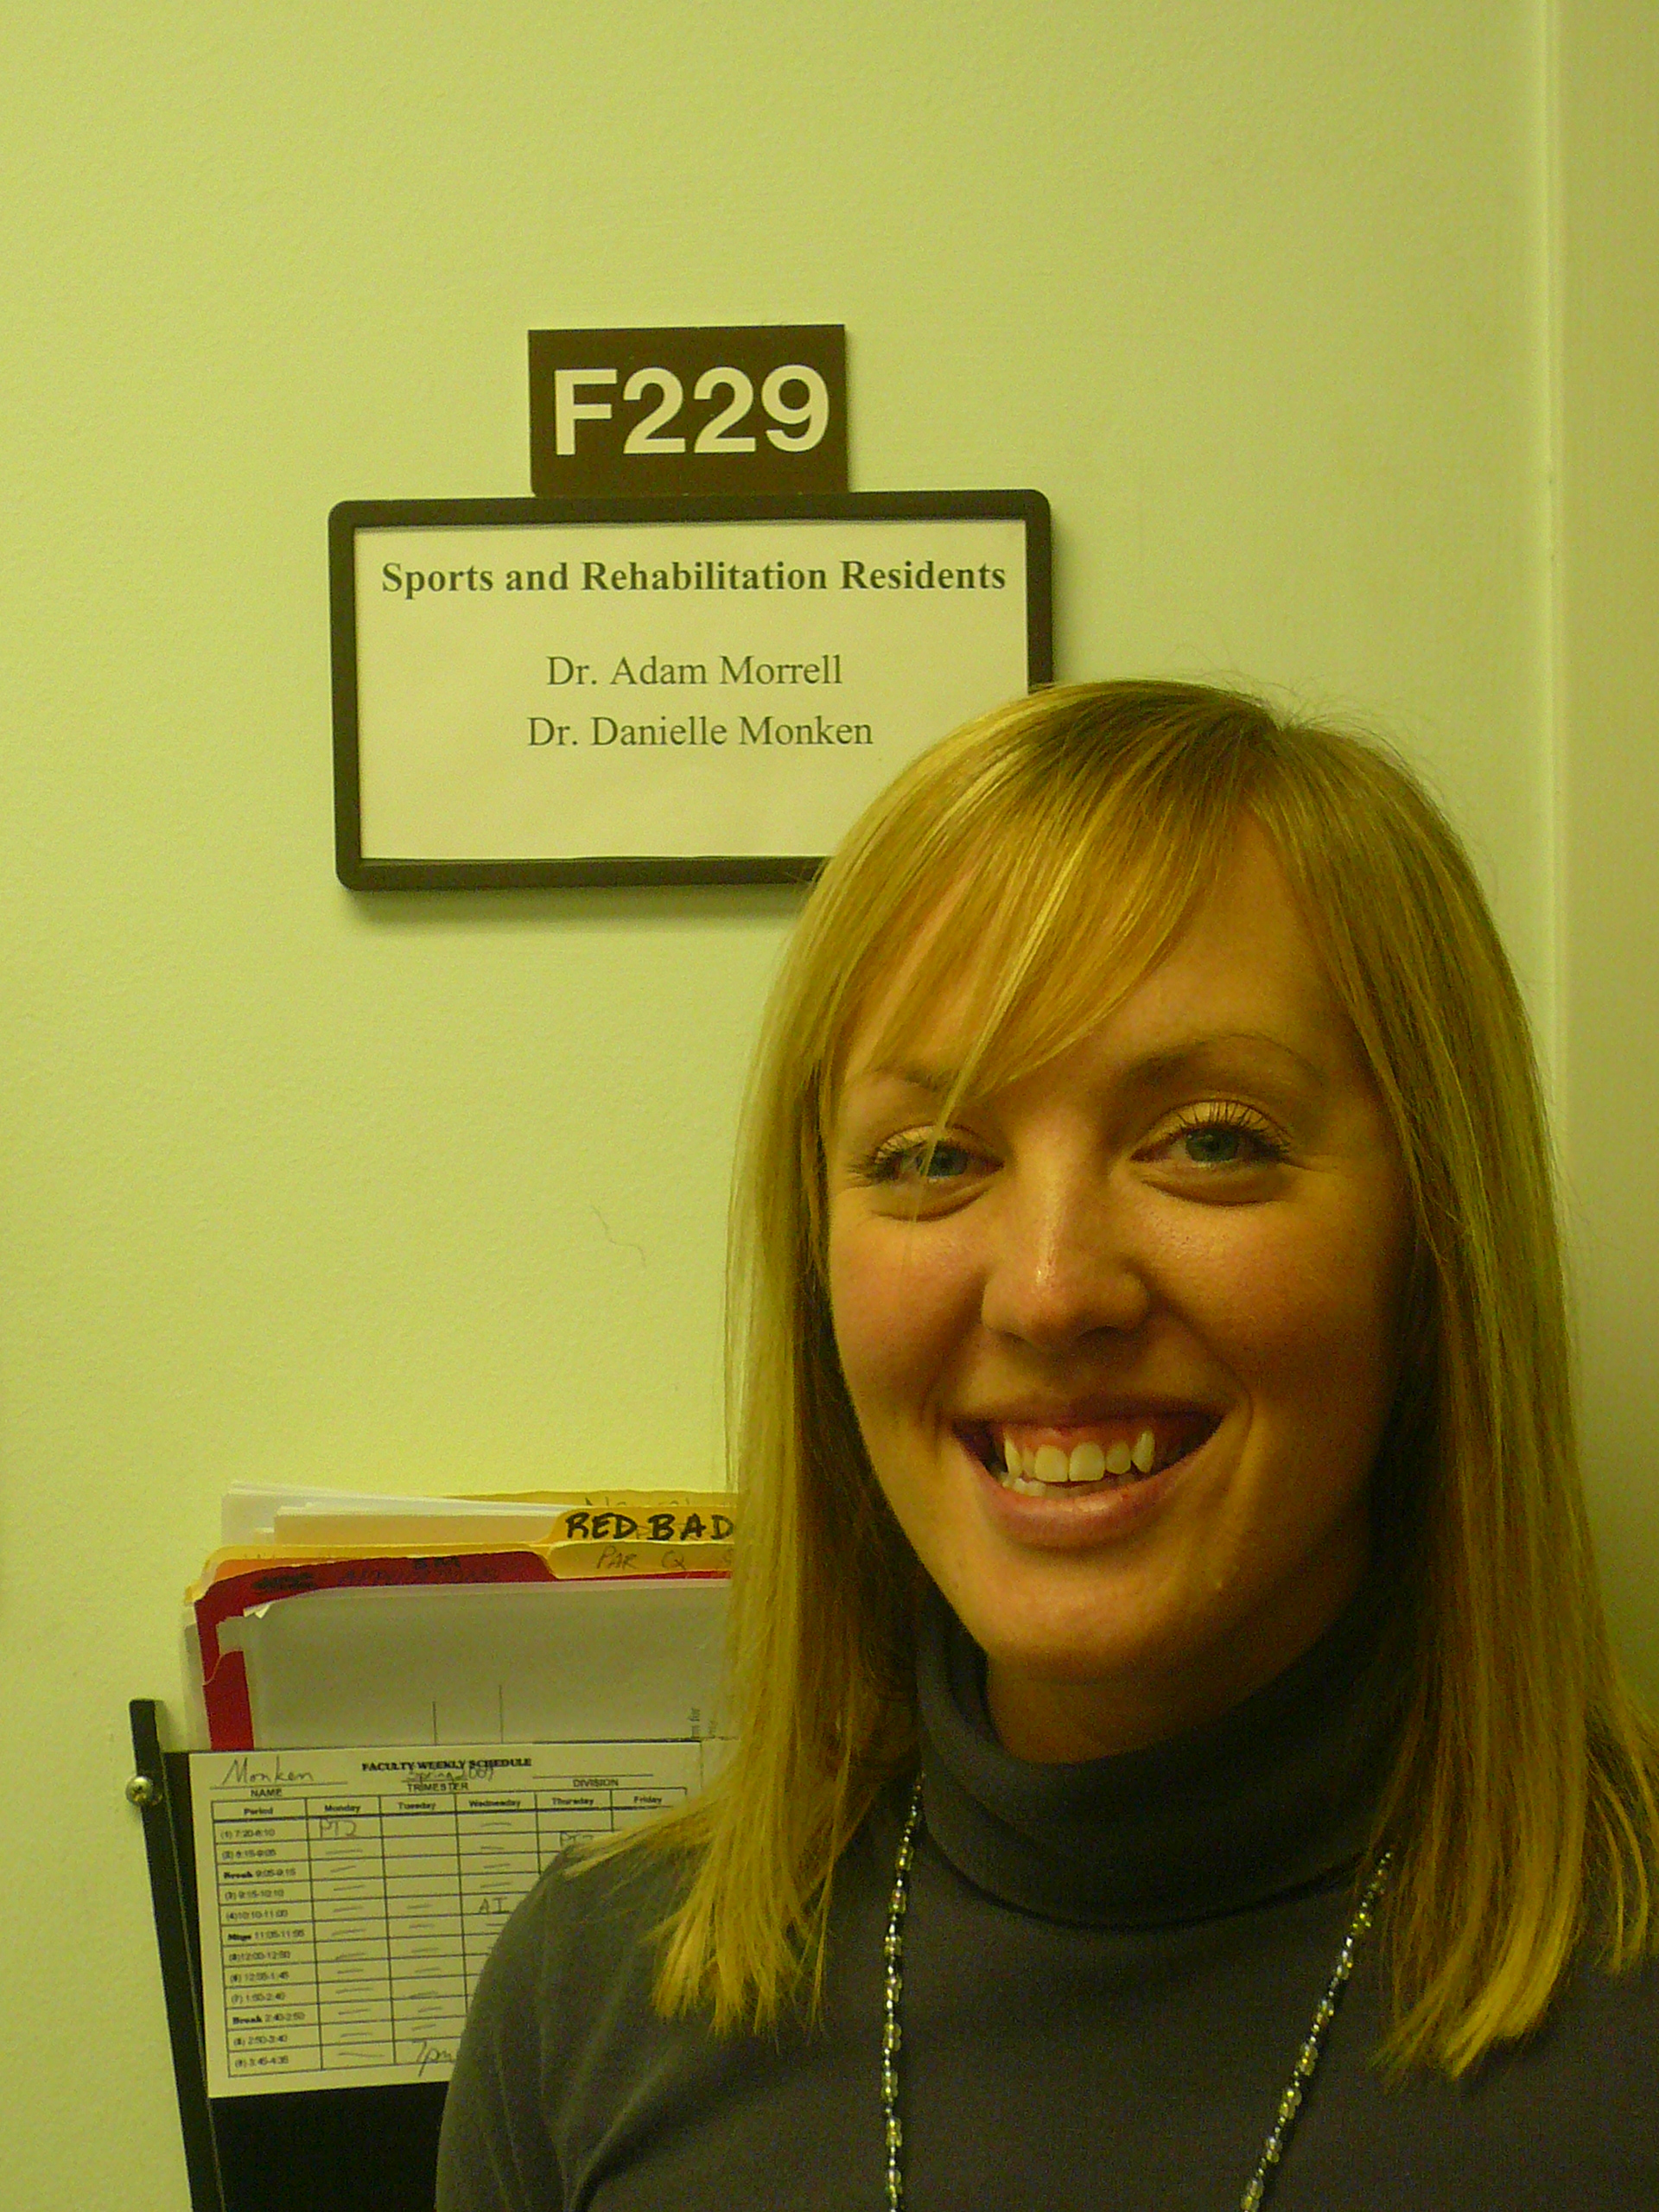 After a year of working at Logan, I finally had gotten my name on the wall outside my office!  (March 2009)